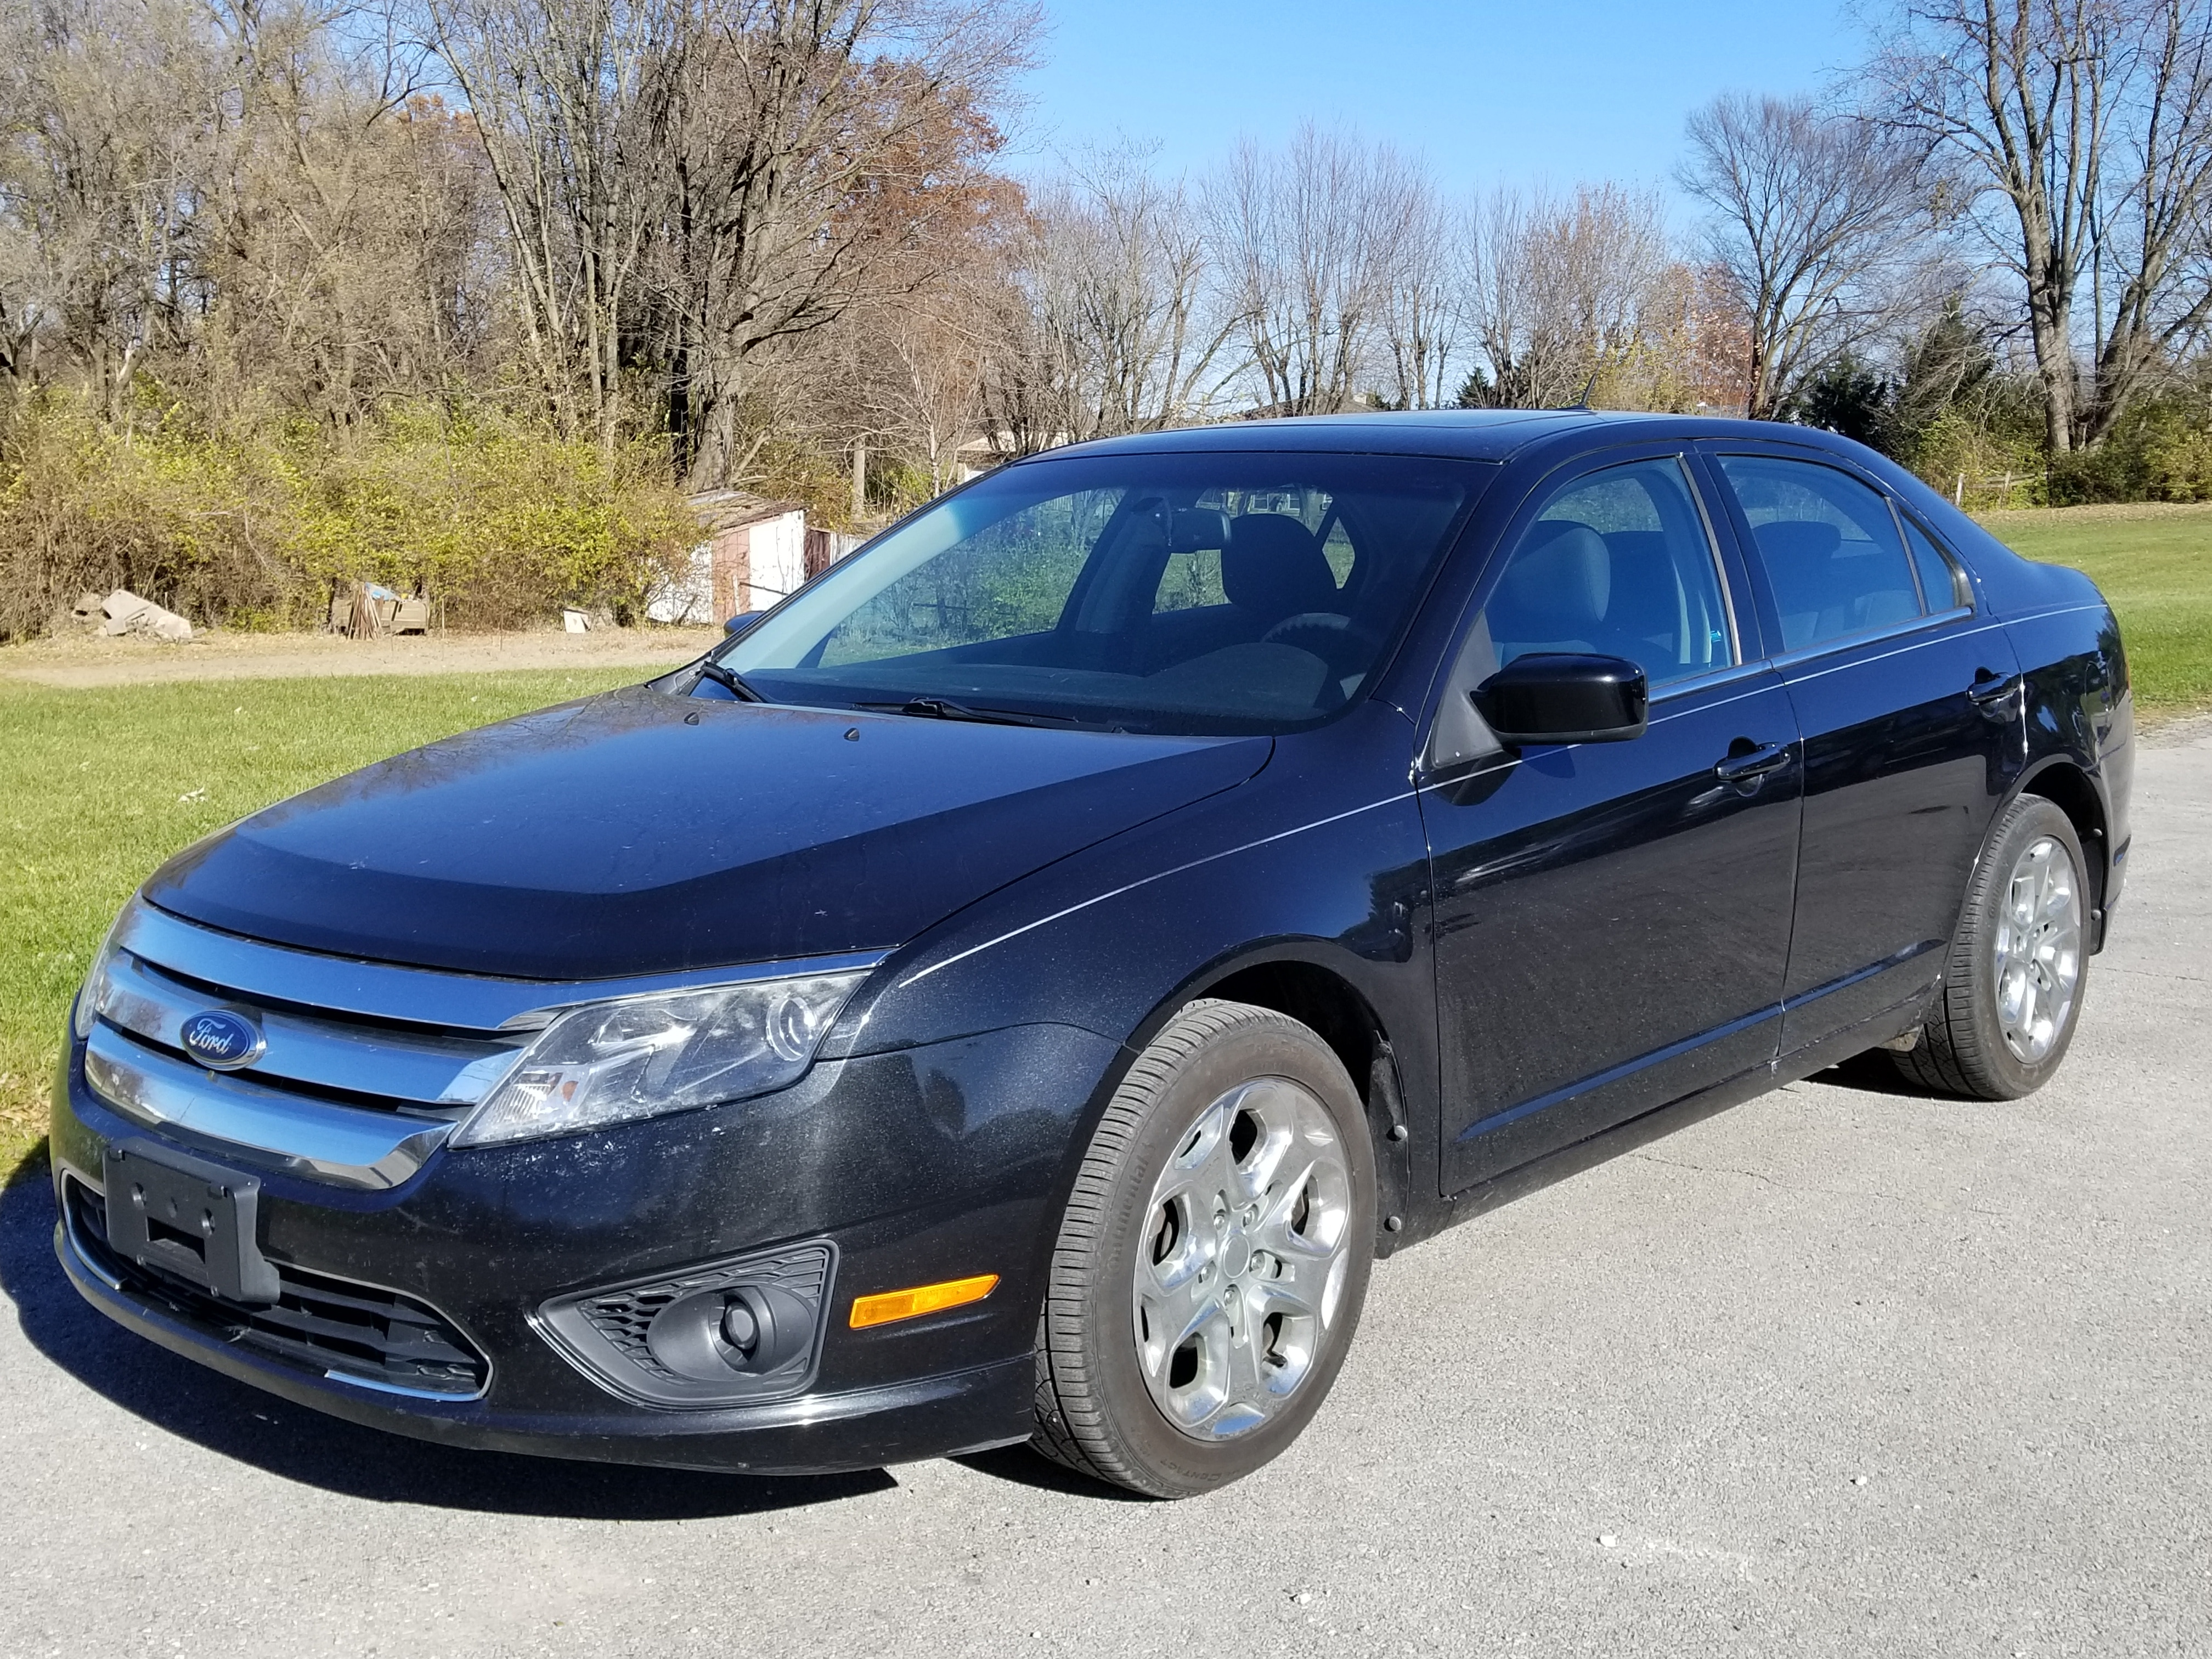 Used 2010 Ford Fusion For Sale at Evans Ford Inc  | VIN